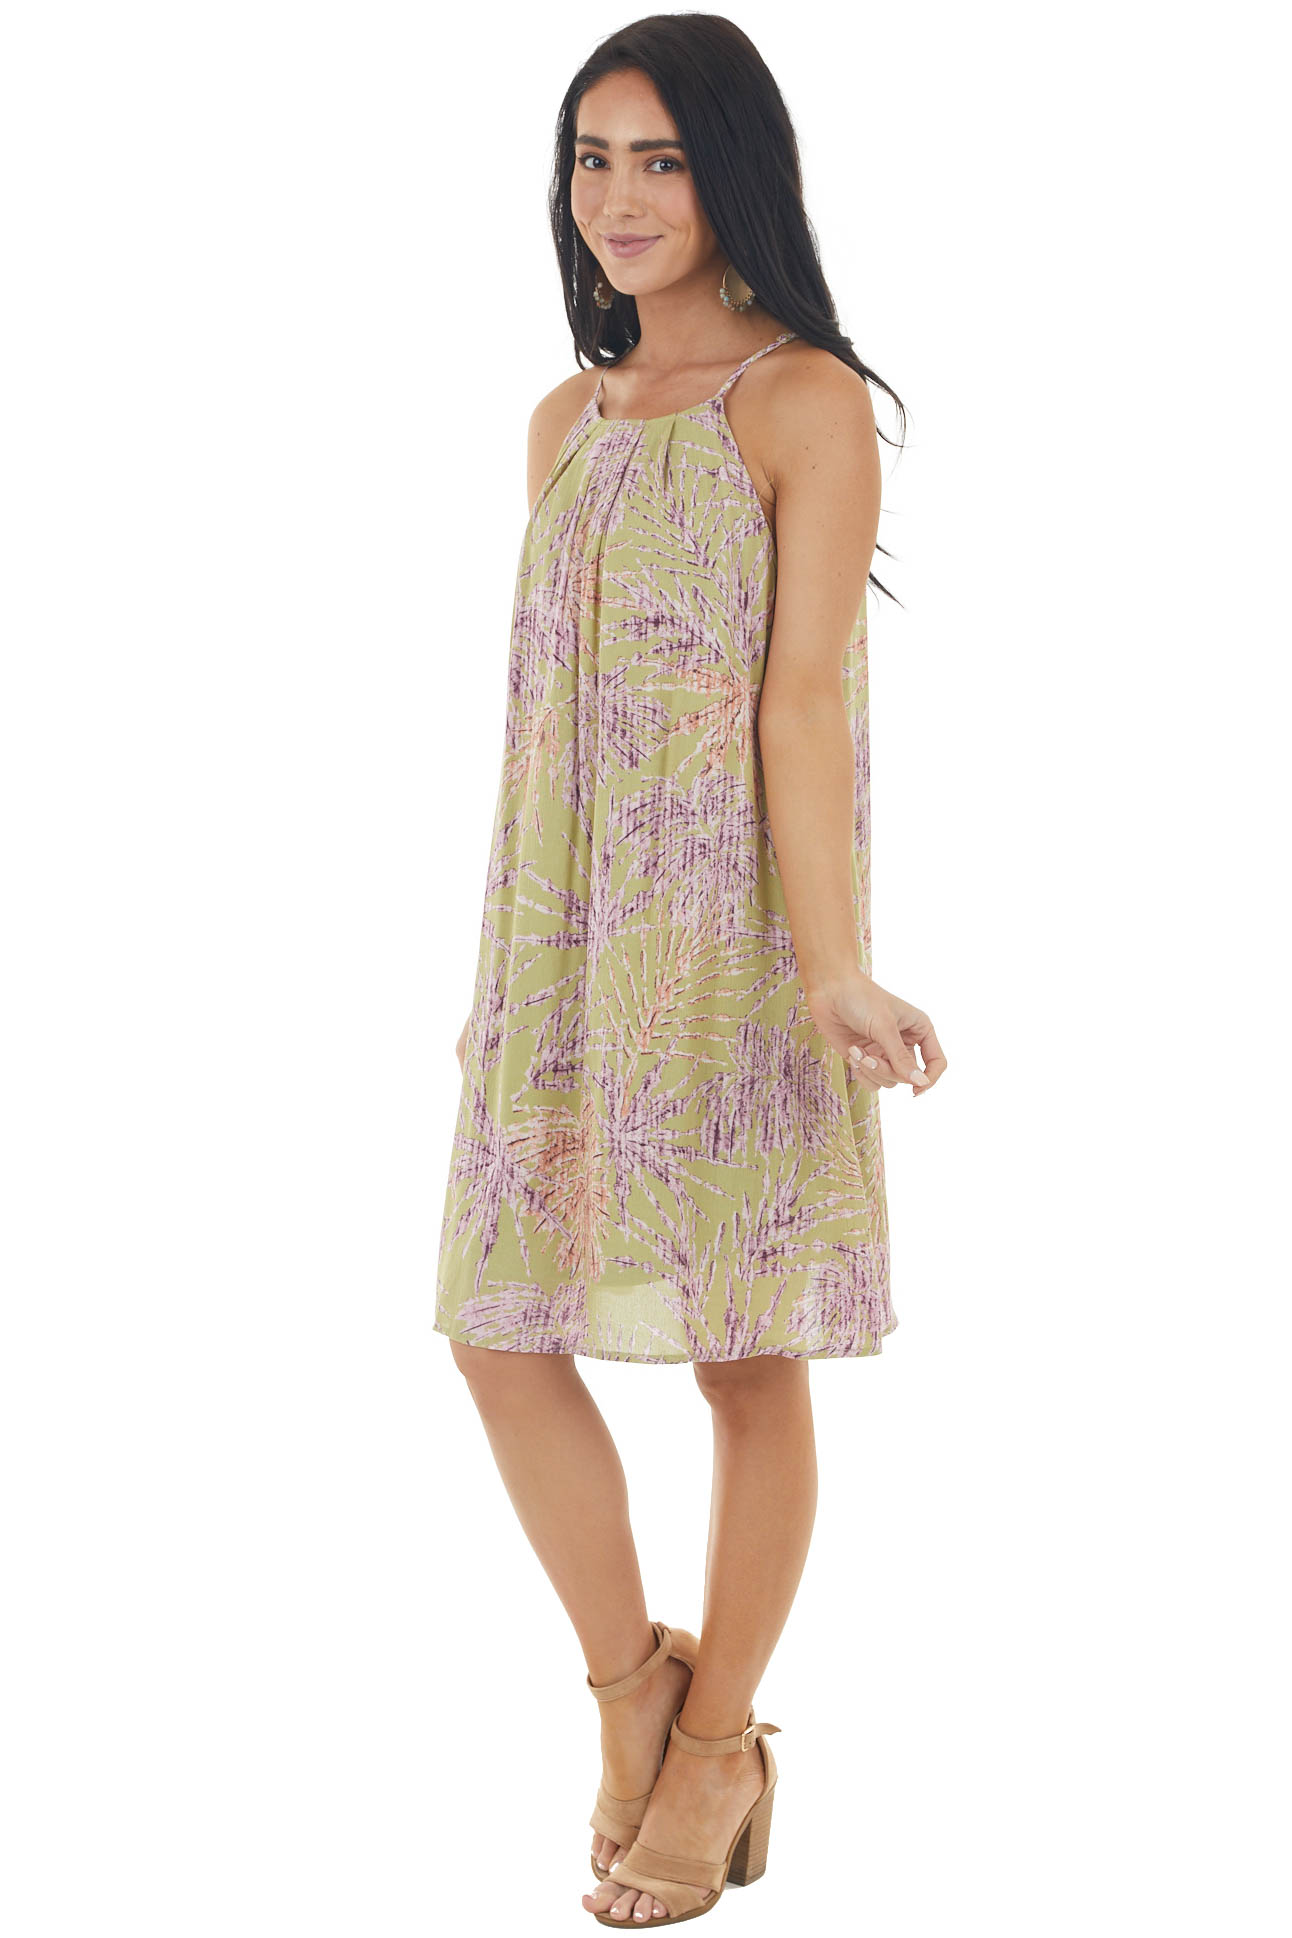 Pistachio Tropical Print Short Dress with Halter Neckline